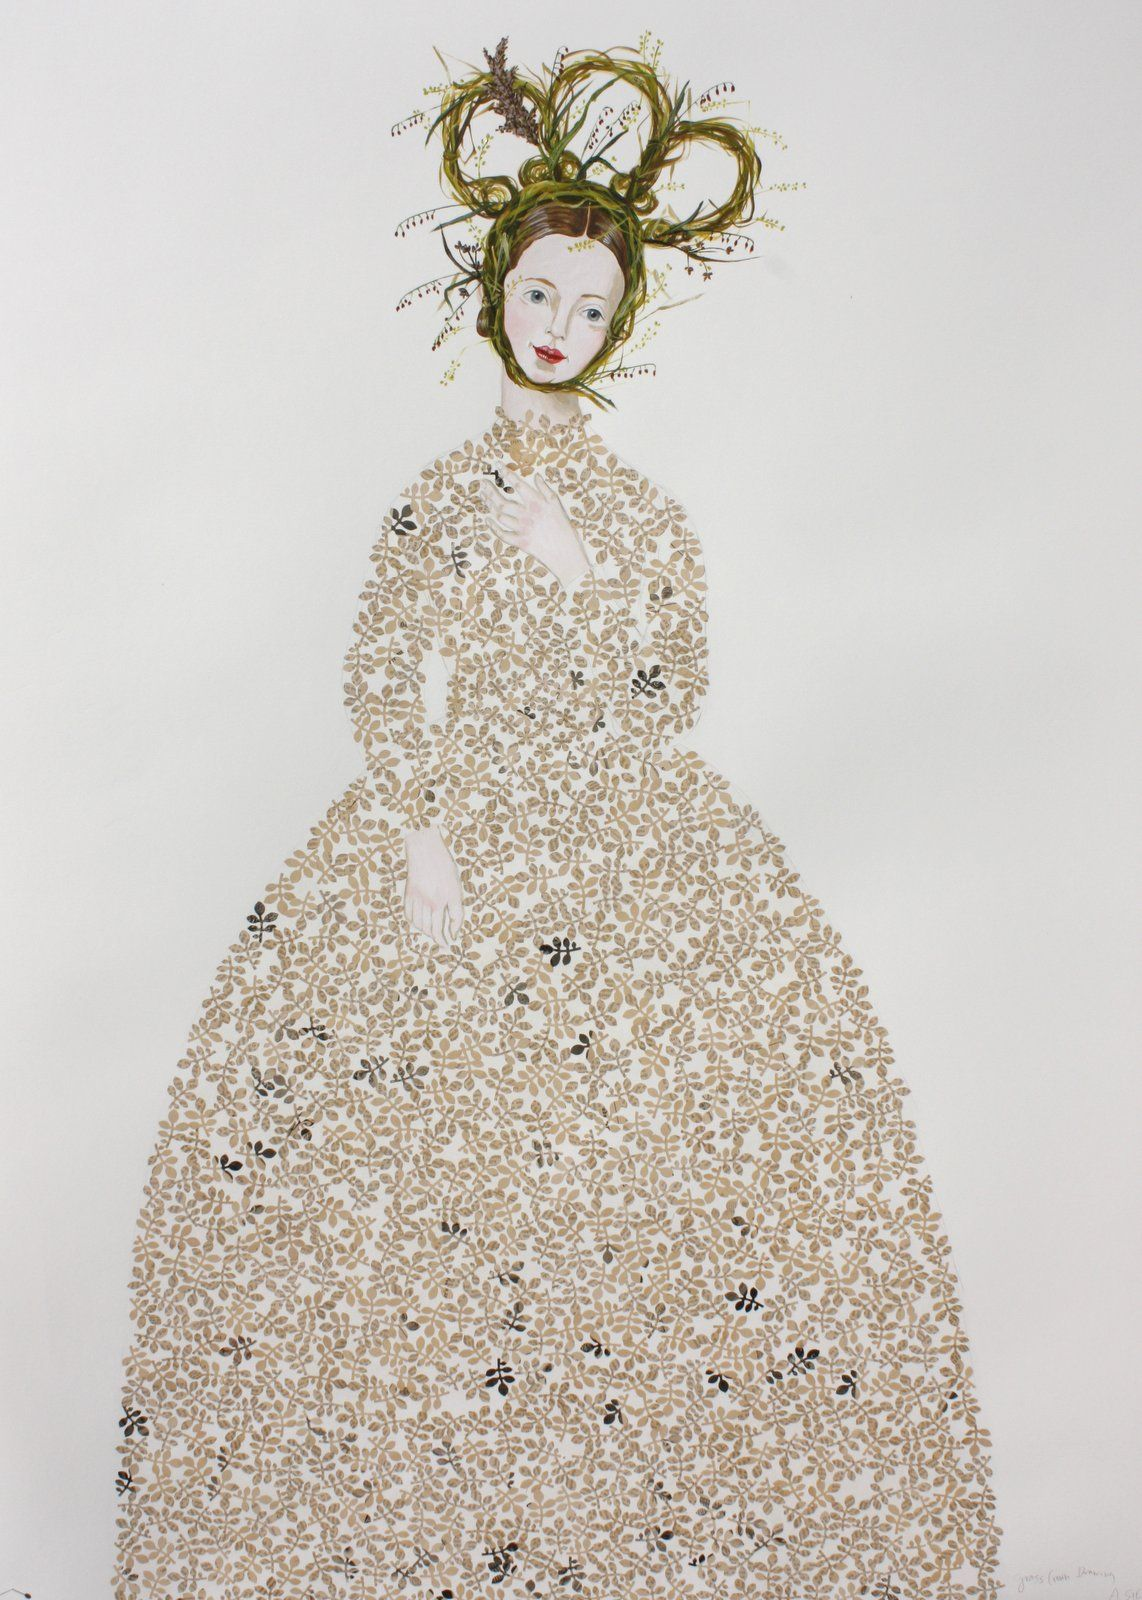 """The entire dress in this painting is made up of collage from an old book. We love Anne Siems. """"Grass Crown"""", acrylic and collage on paper, 50x38 inches at Wally Workman Gallery in Austin, Texas"""